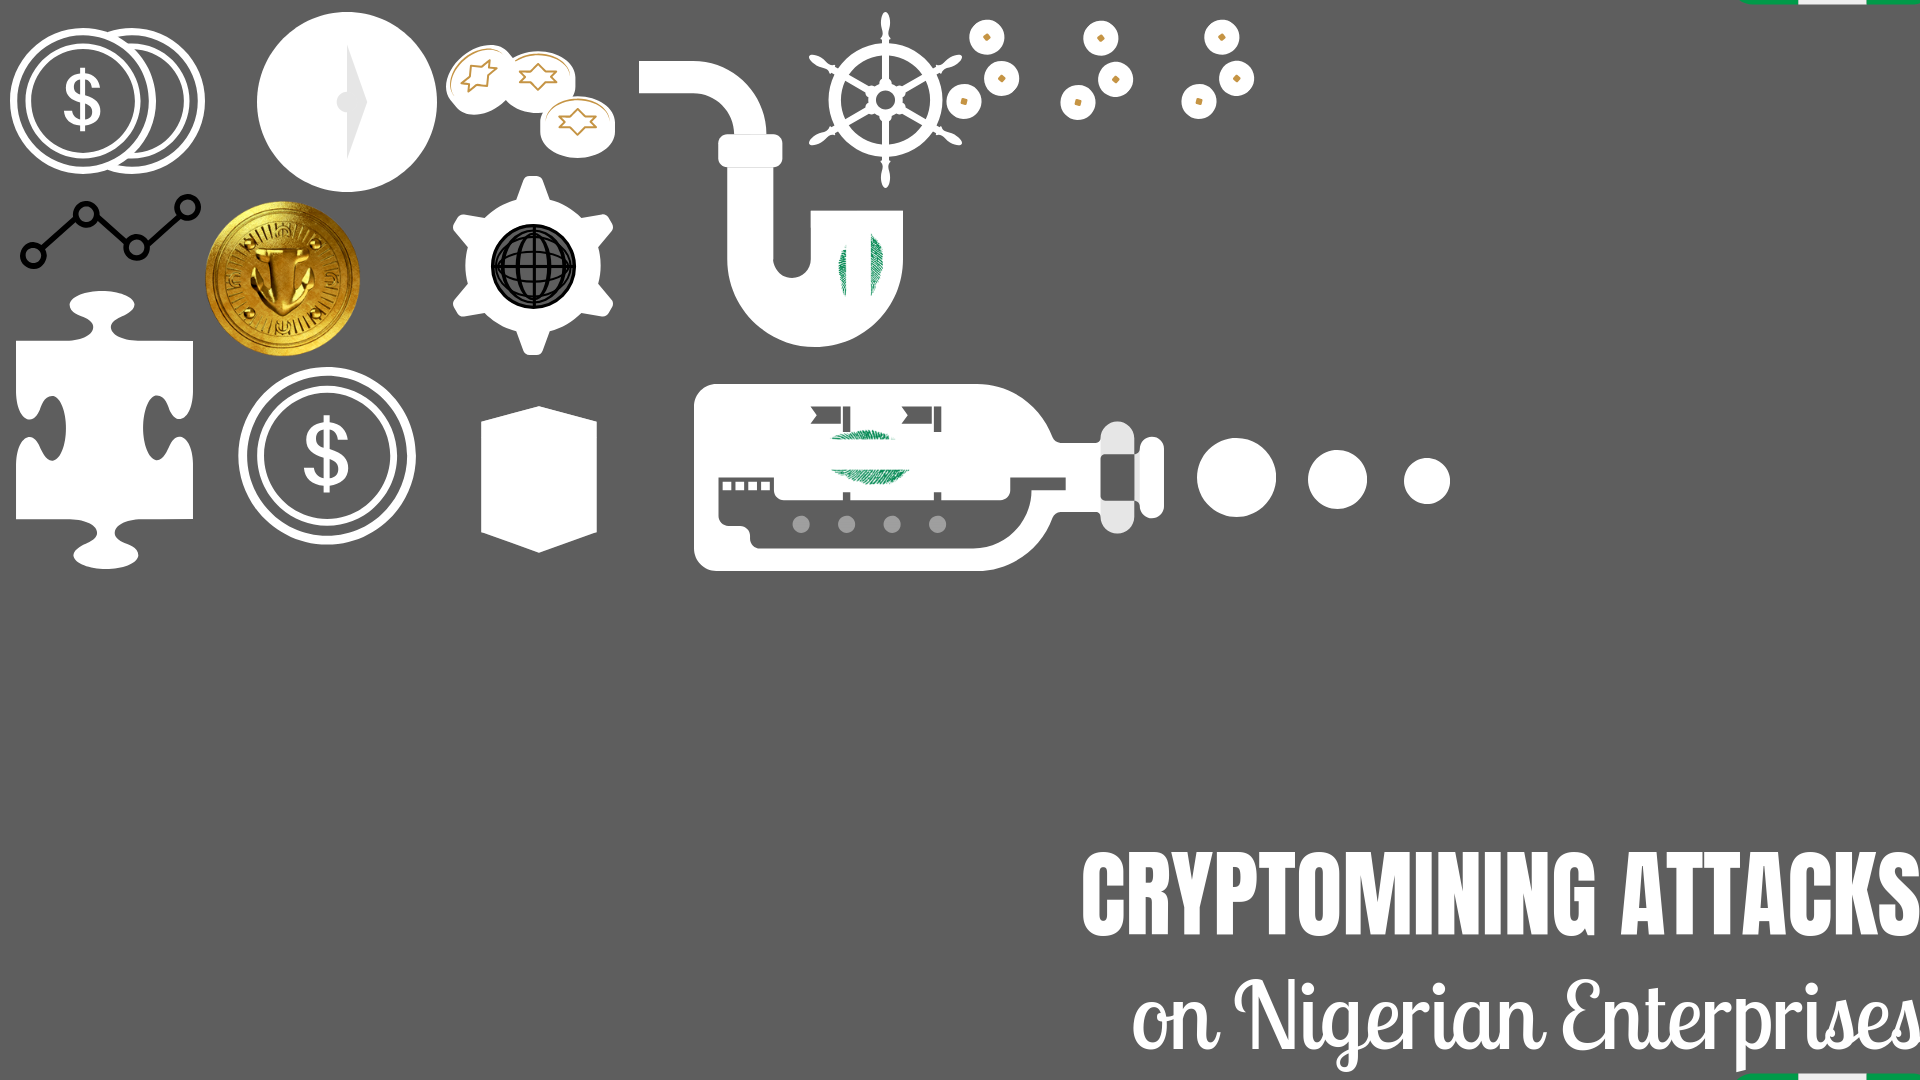 Cyber Criminals Target Enterprises in Nigeria – Cryptomining Attacks